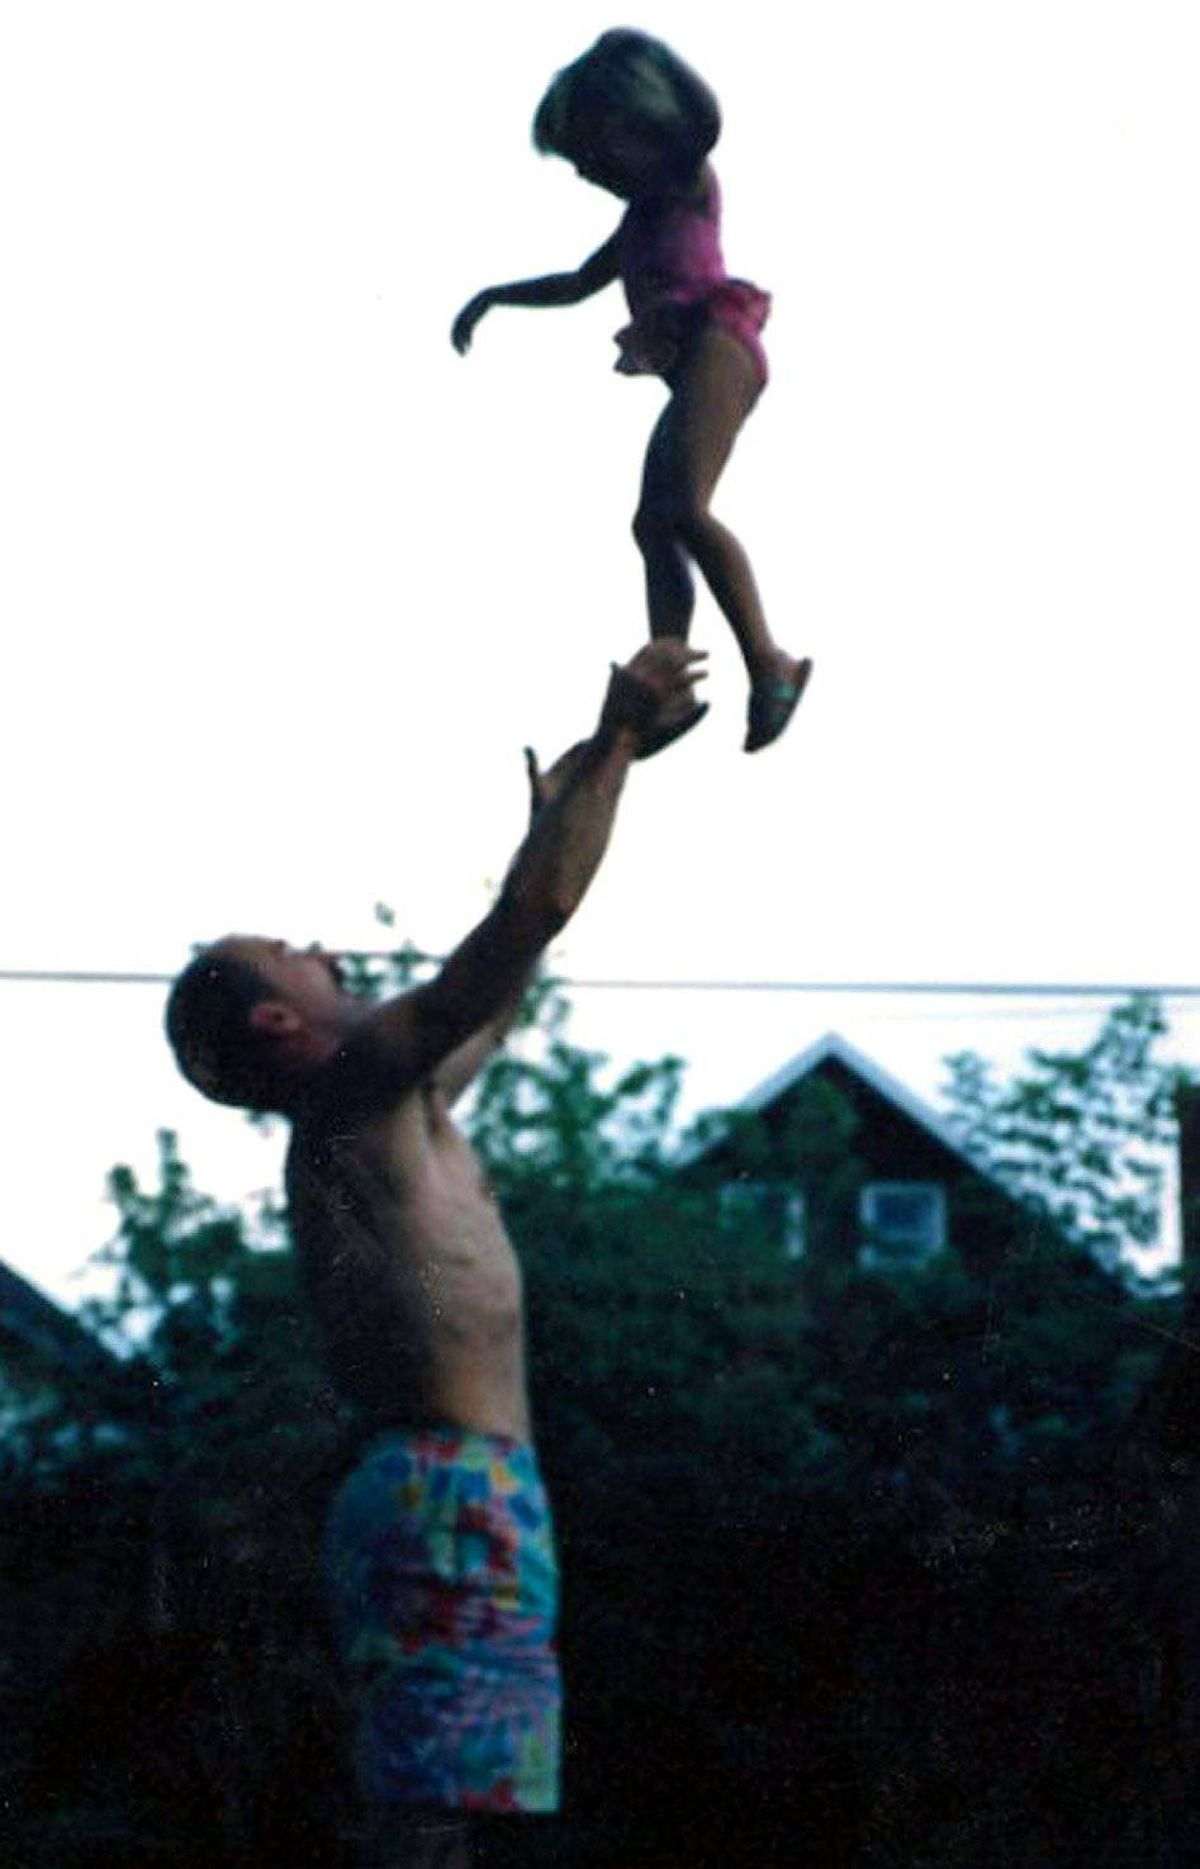 When I was a little girl my dad used to toss me up in the air or let me jump off of the fridge into his arms - As my feet hit the ground I would beg him to let me do it again. It was such a rush!